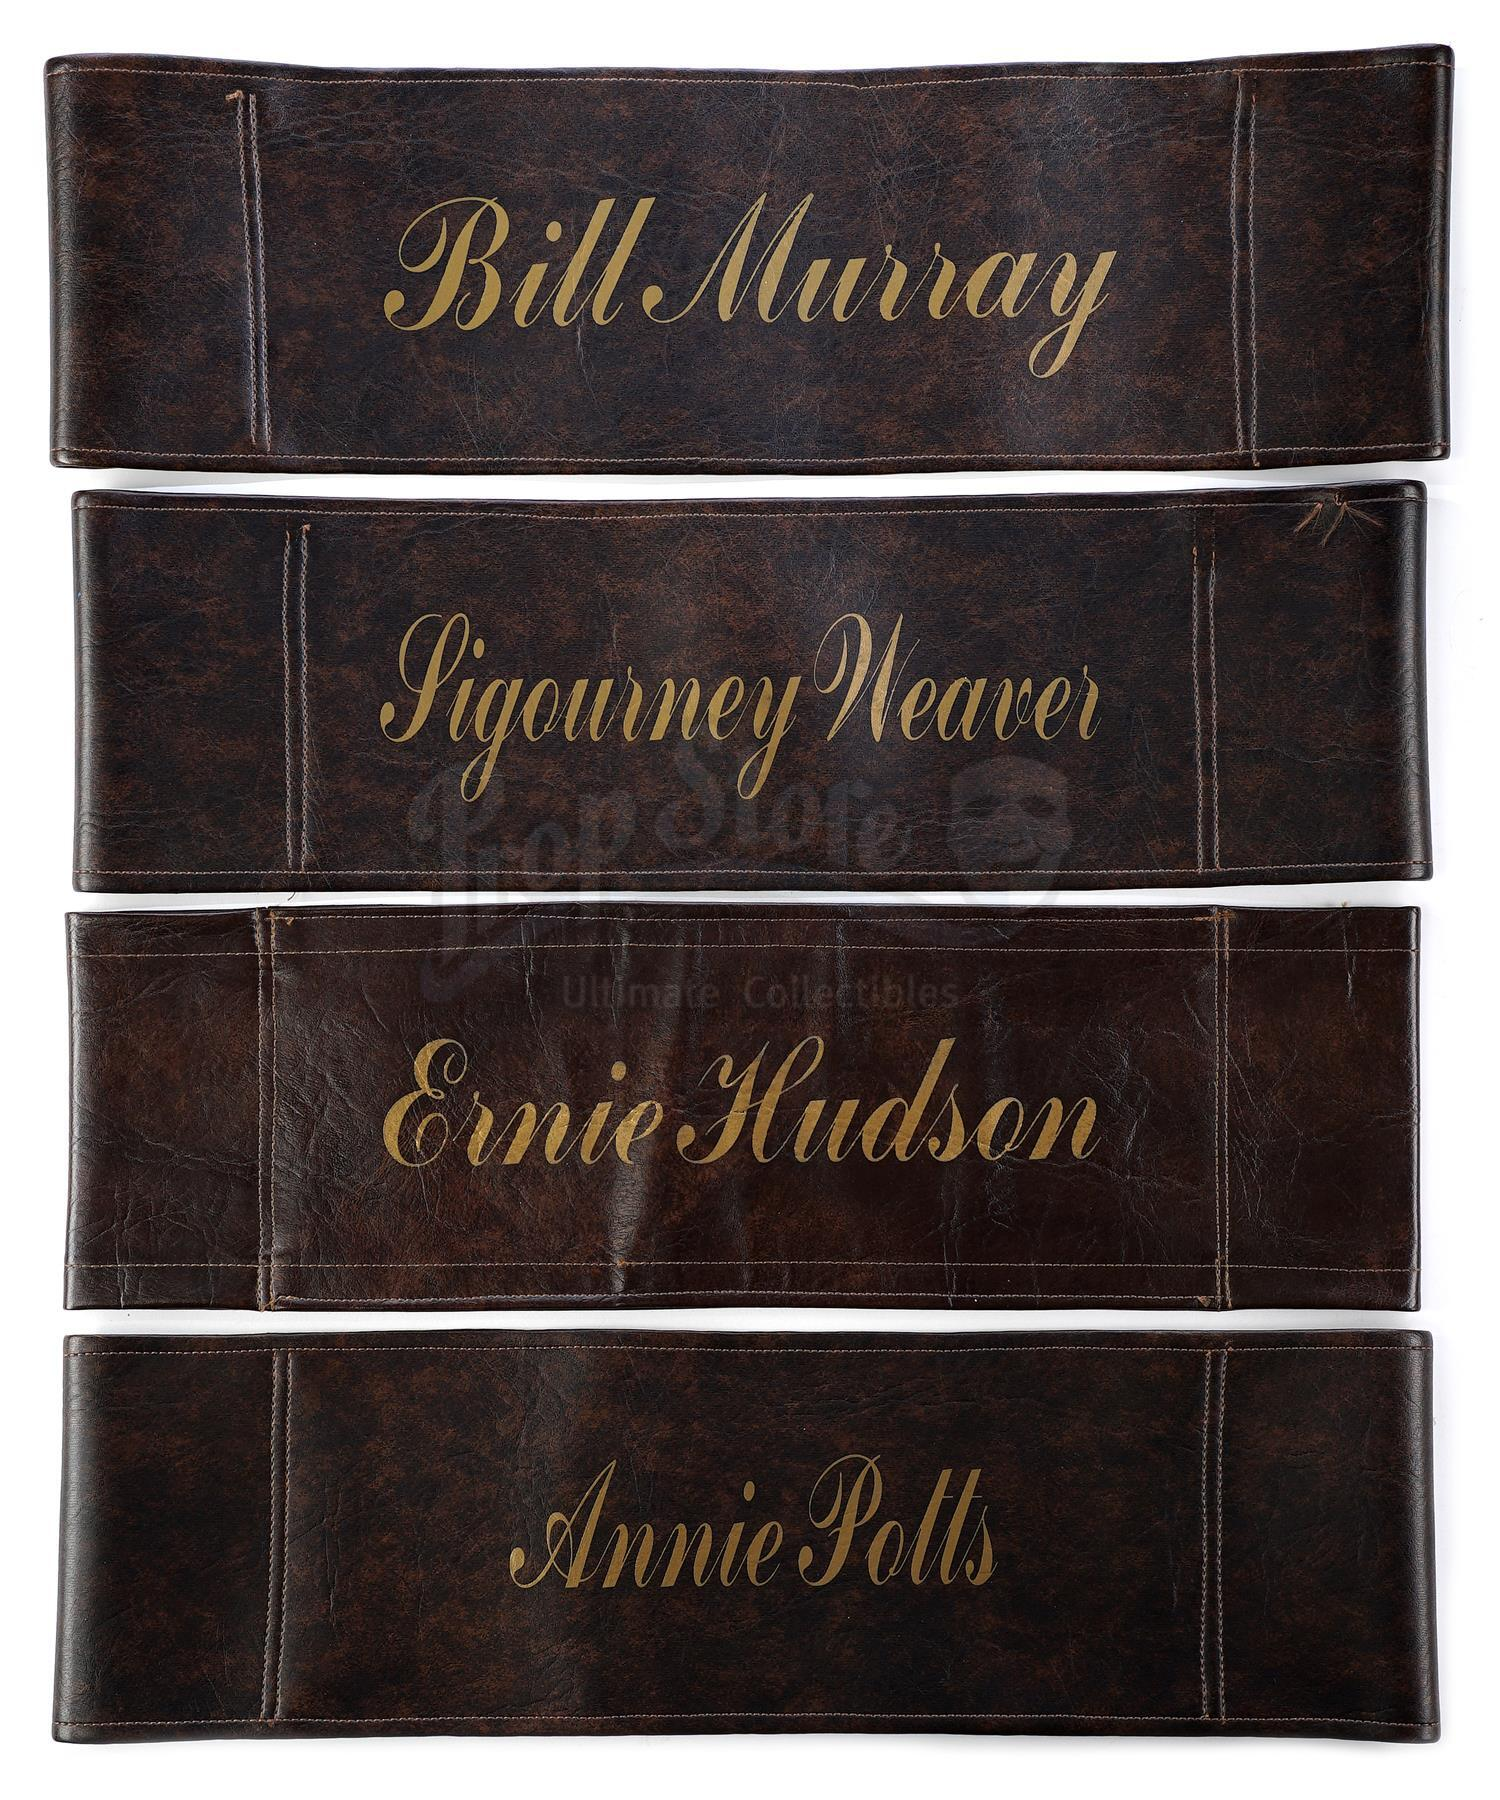 Lot # 692: GHOSTBUSTERS II - Bill Murray, Sigourney Weaver, Ernie Hudson, and Annie Potts' Chairback